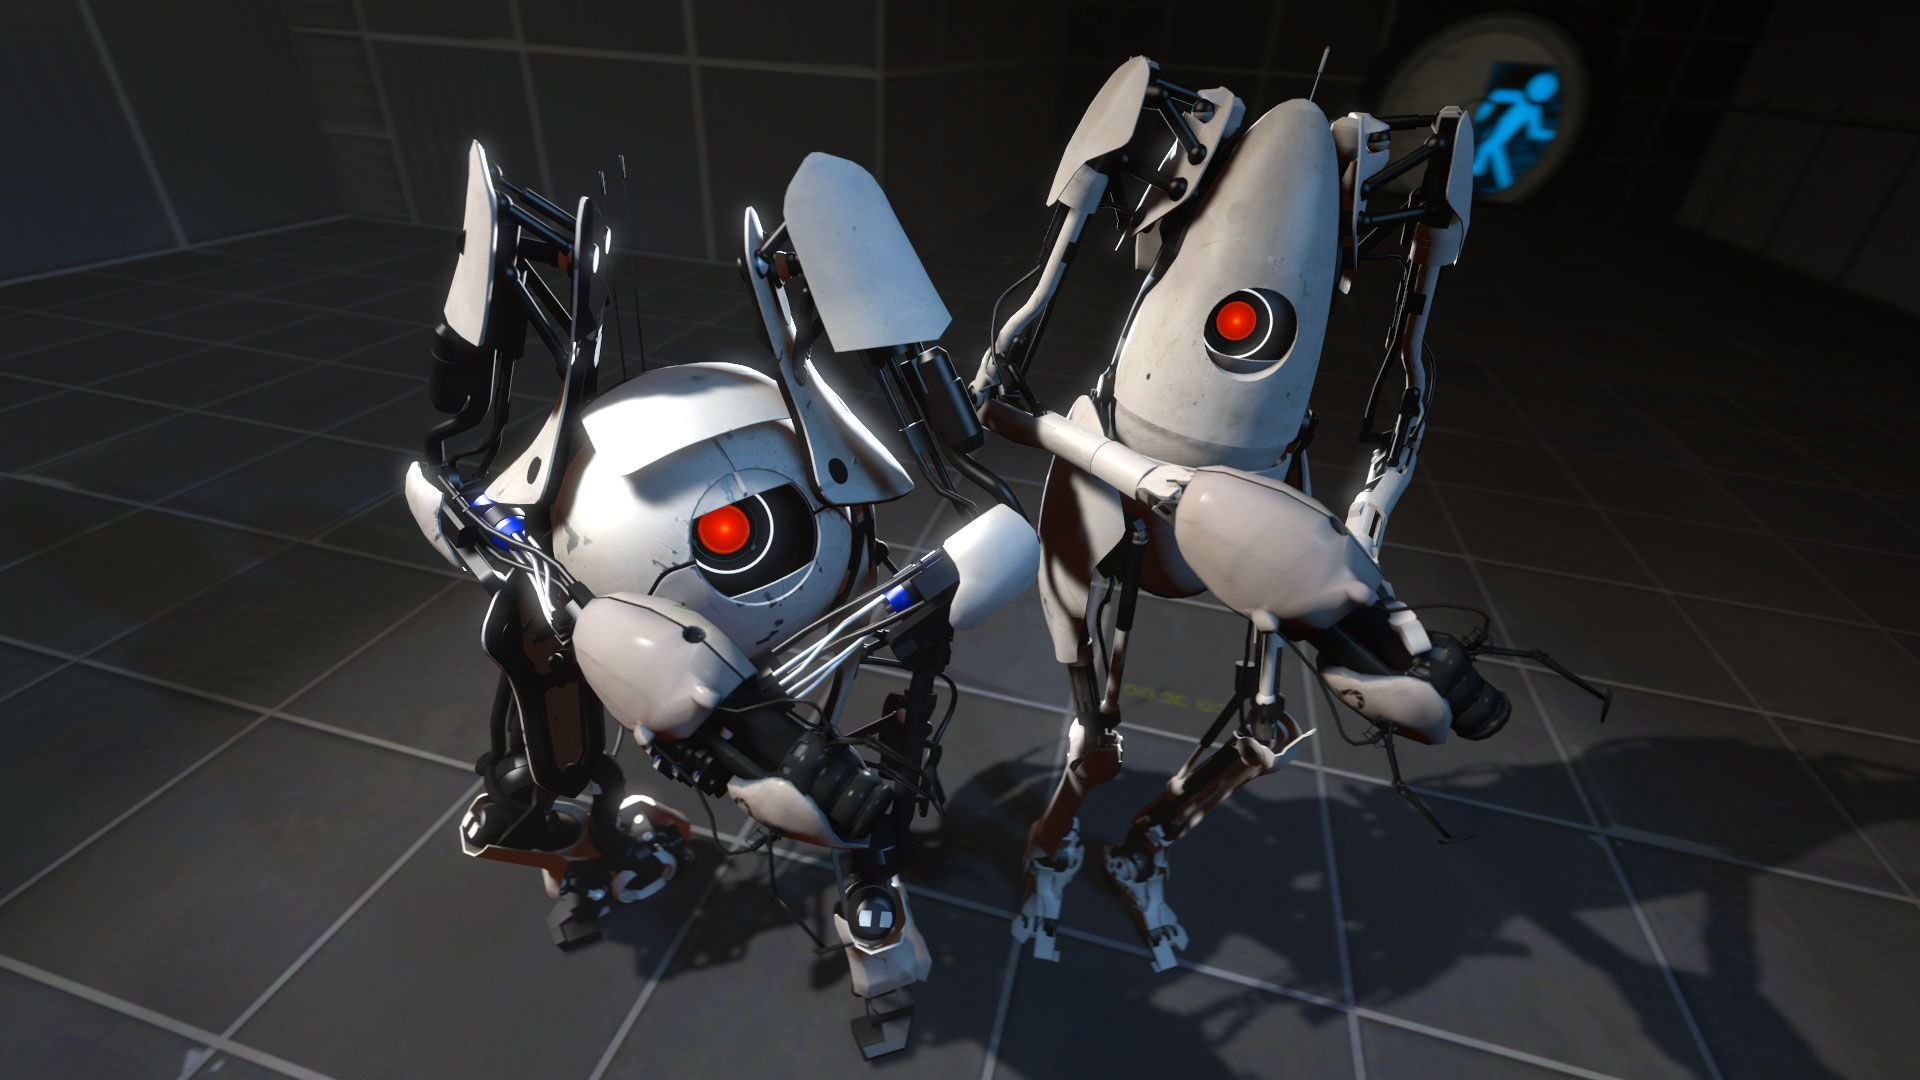 Two robots from Portal 2 pose for a photoshoot.